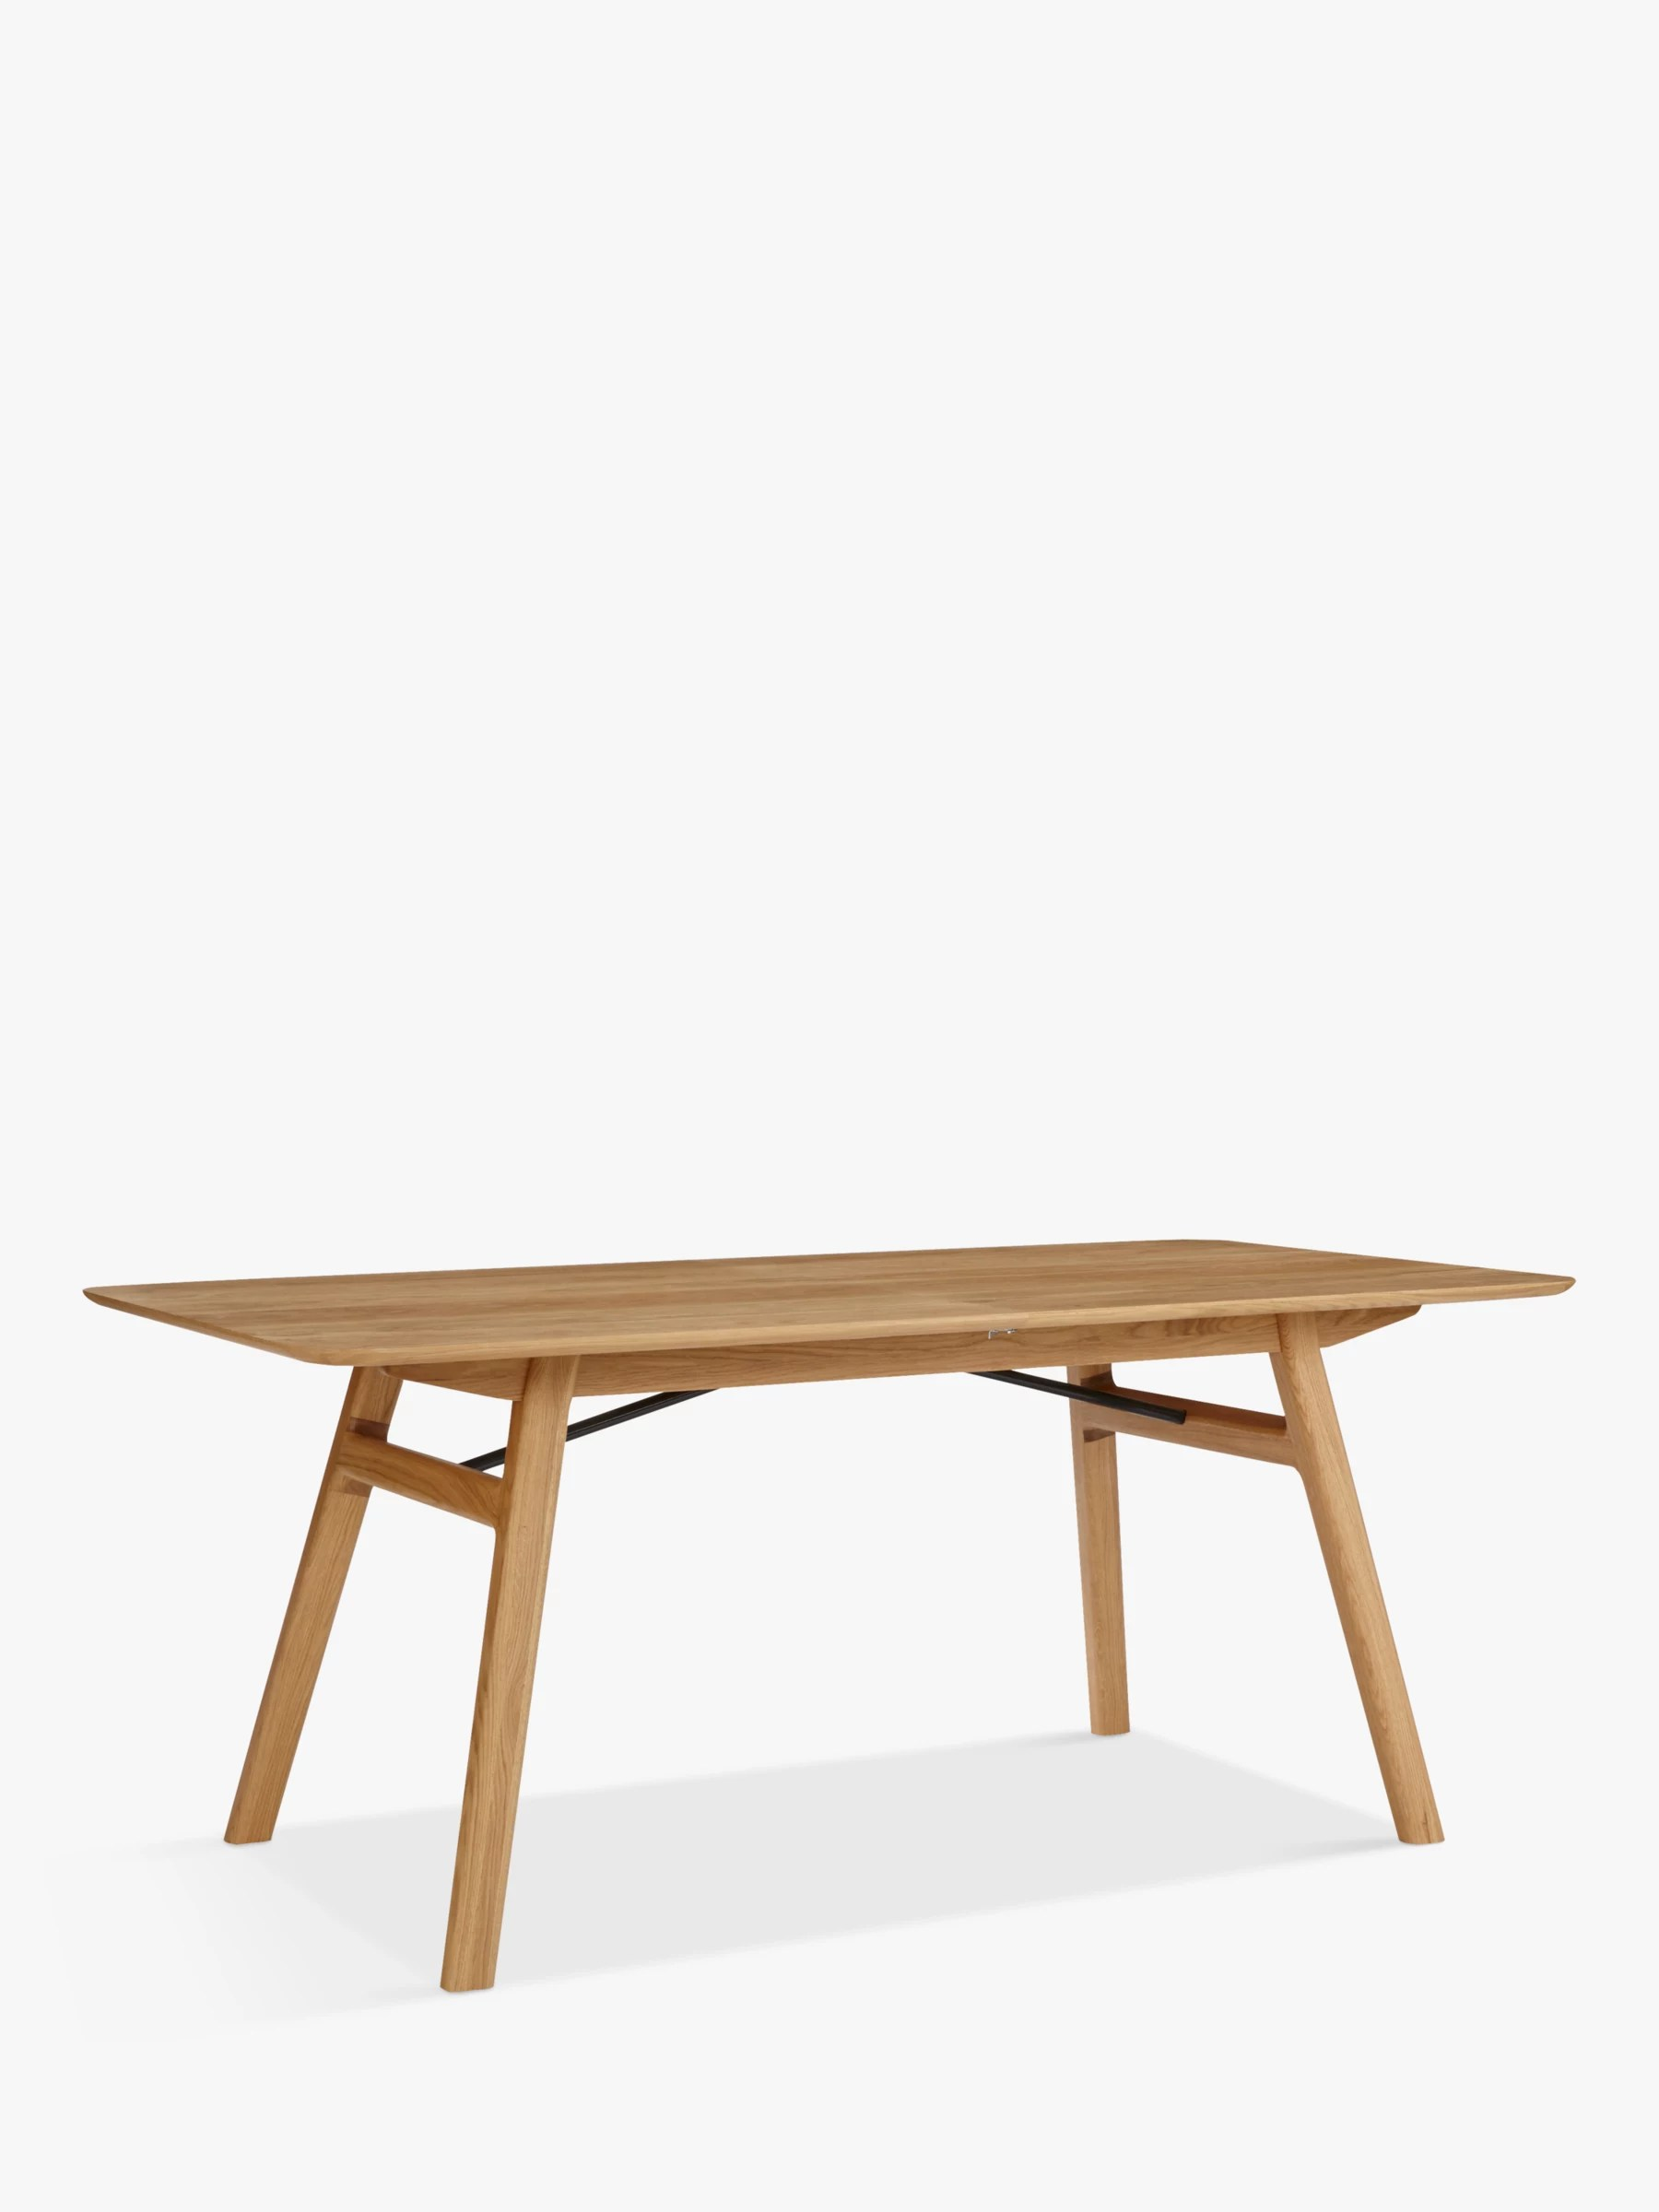 10 Seater Dining Table Design Project By John Lewis No 036 8 10 Seater Extending